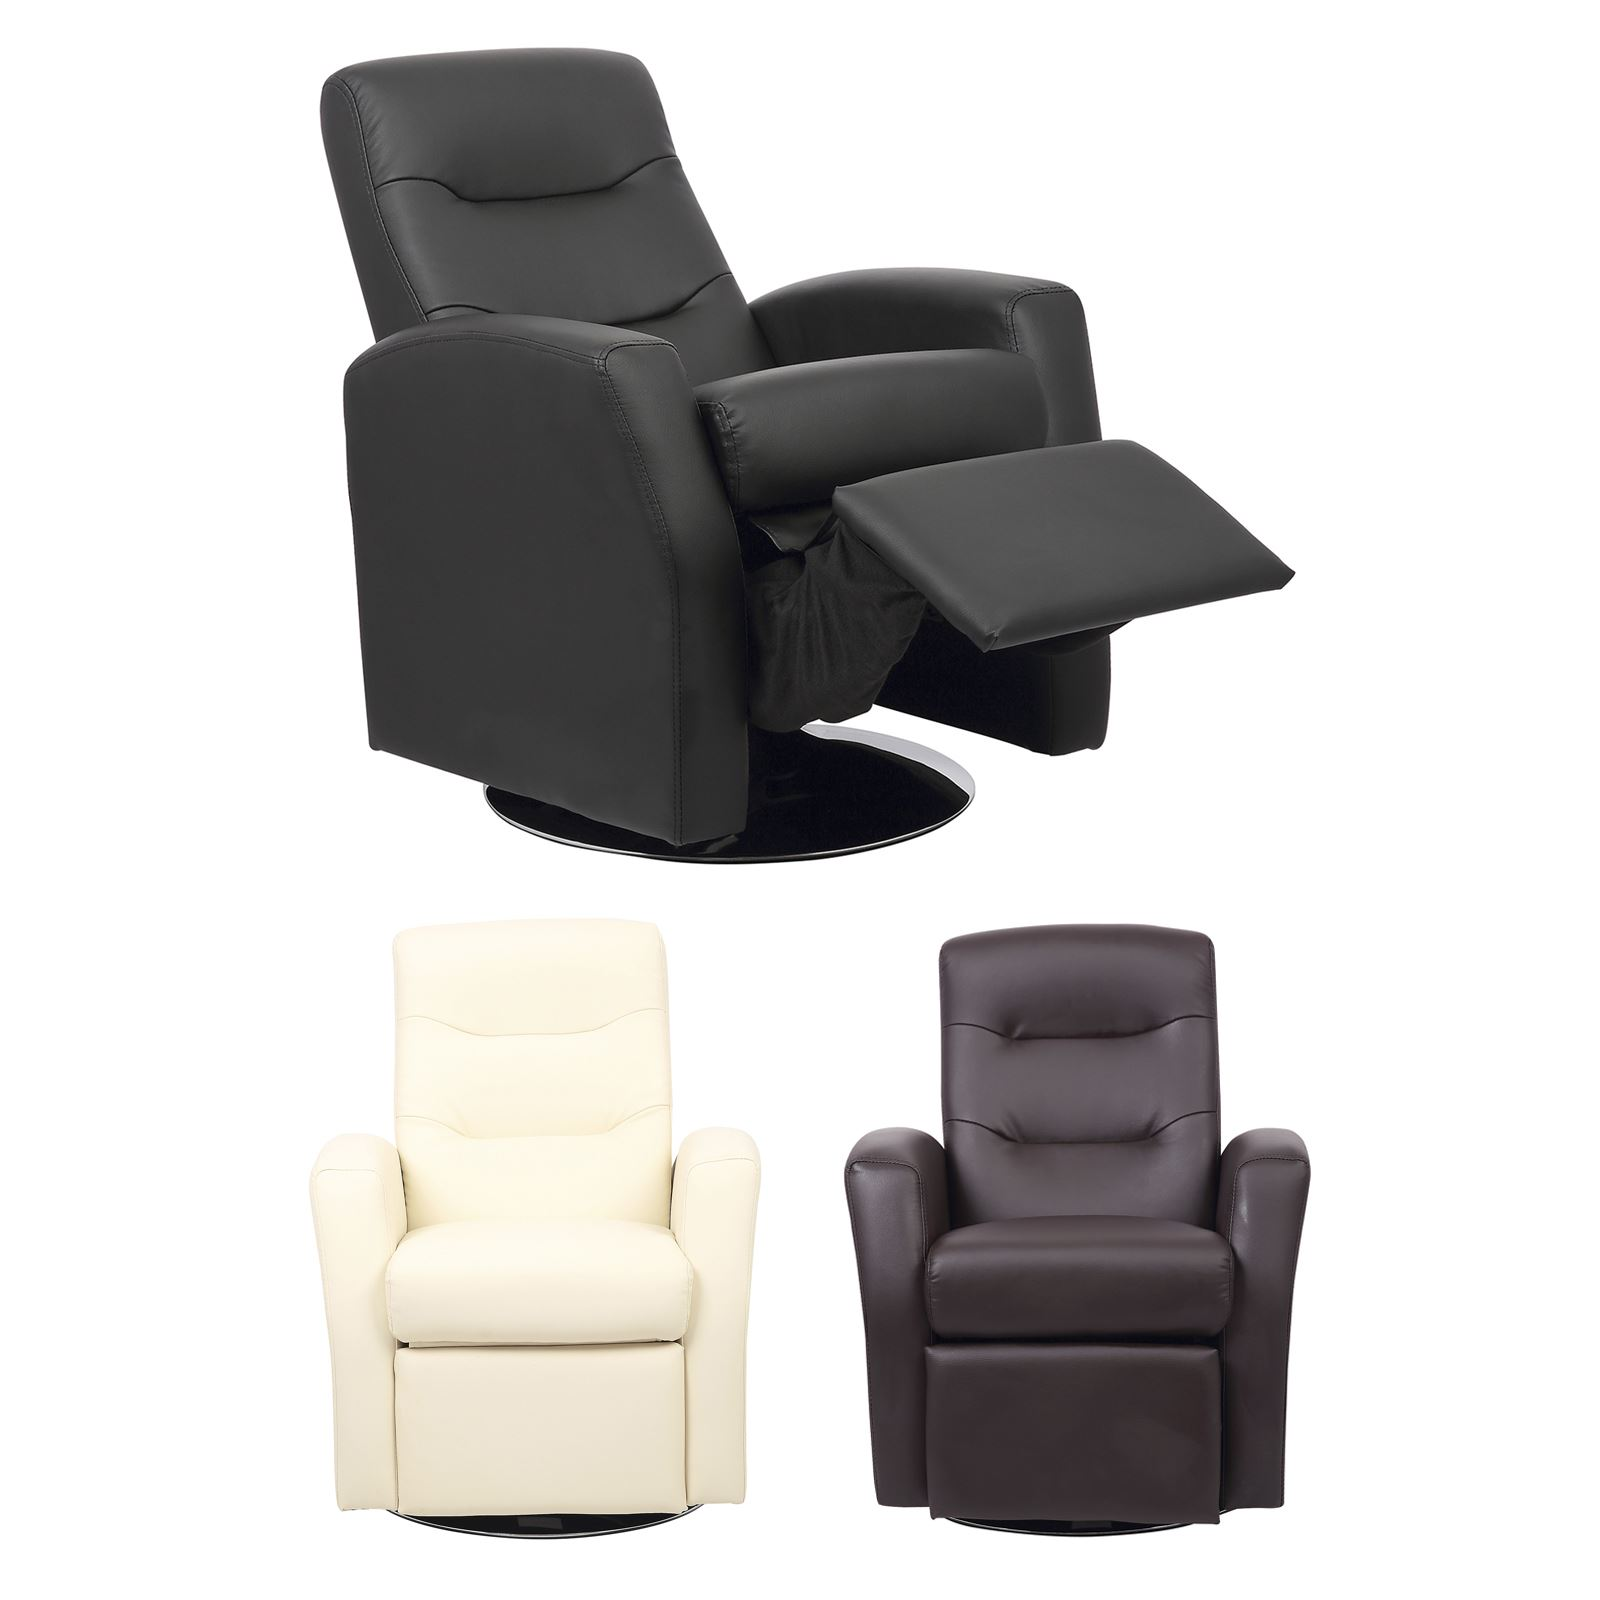 details about luxury kids reclining swivel chair childrens comfortable faux leather armchair